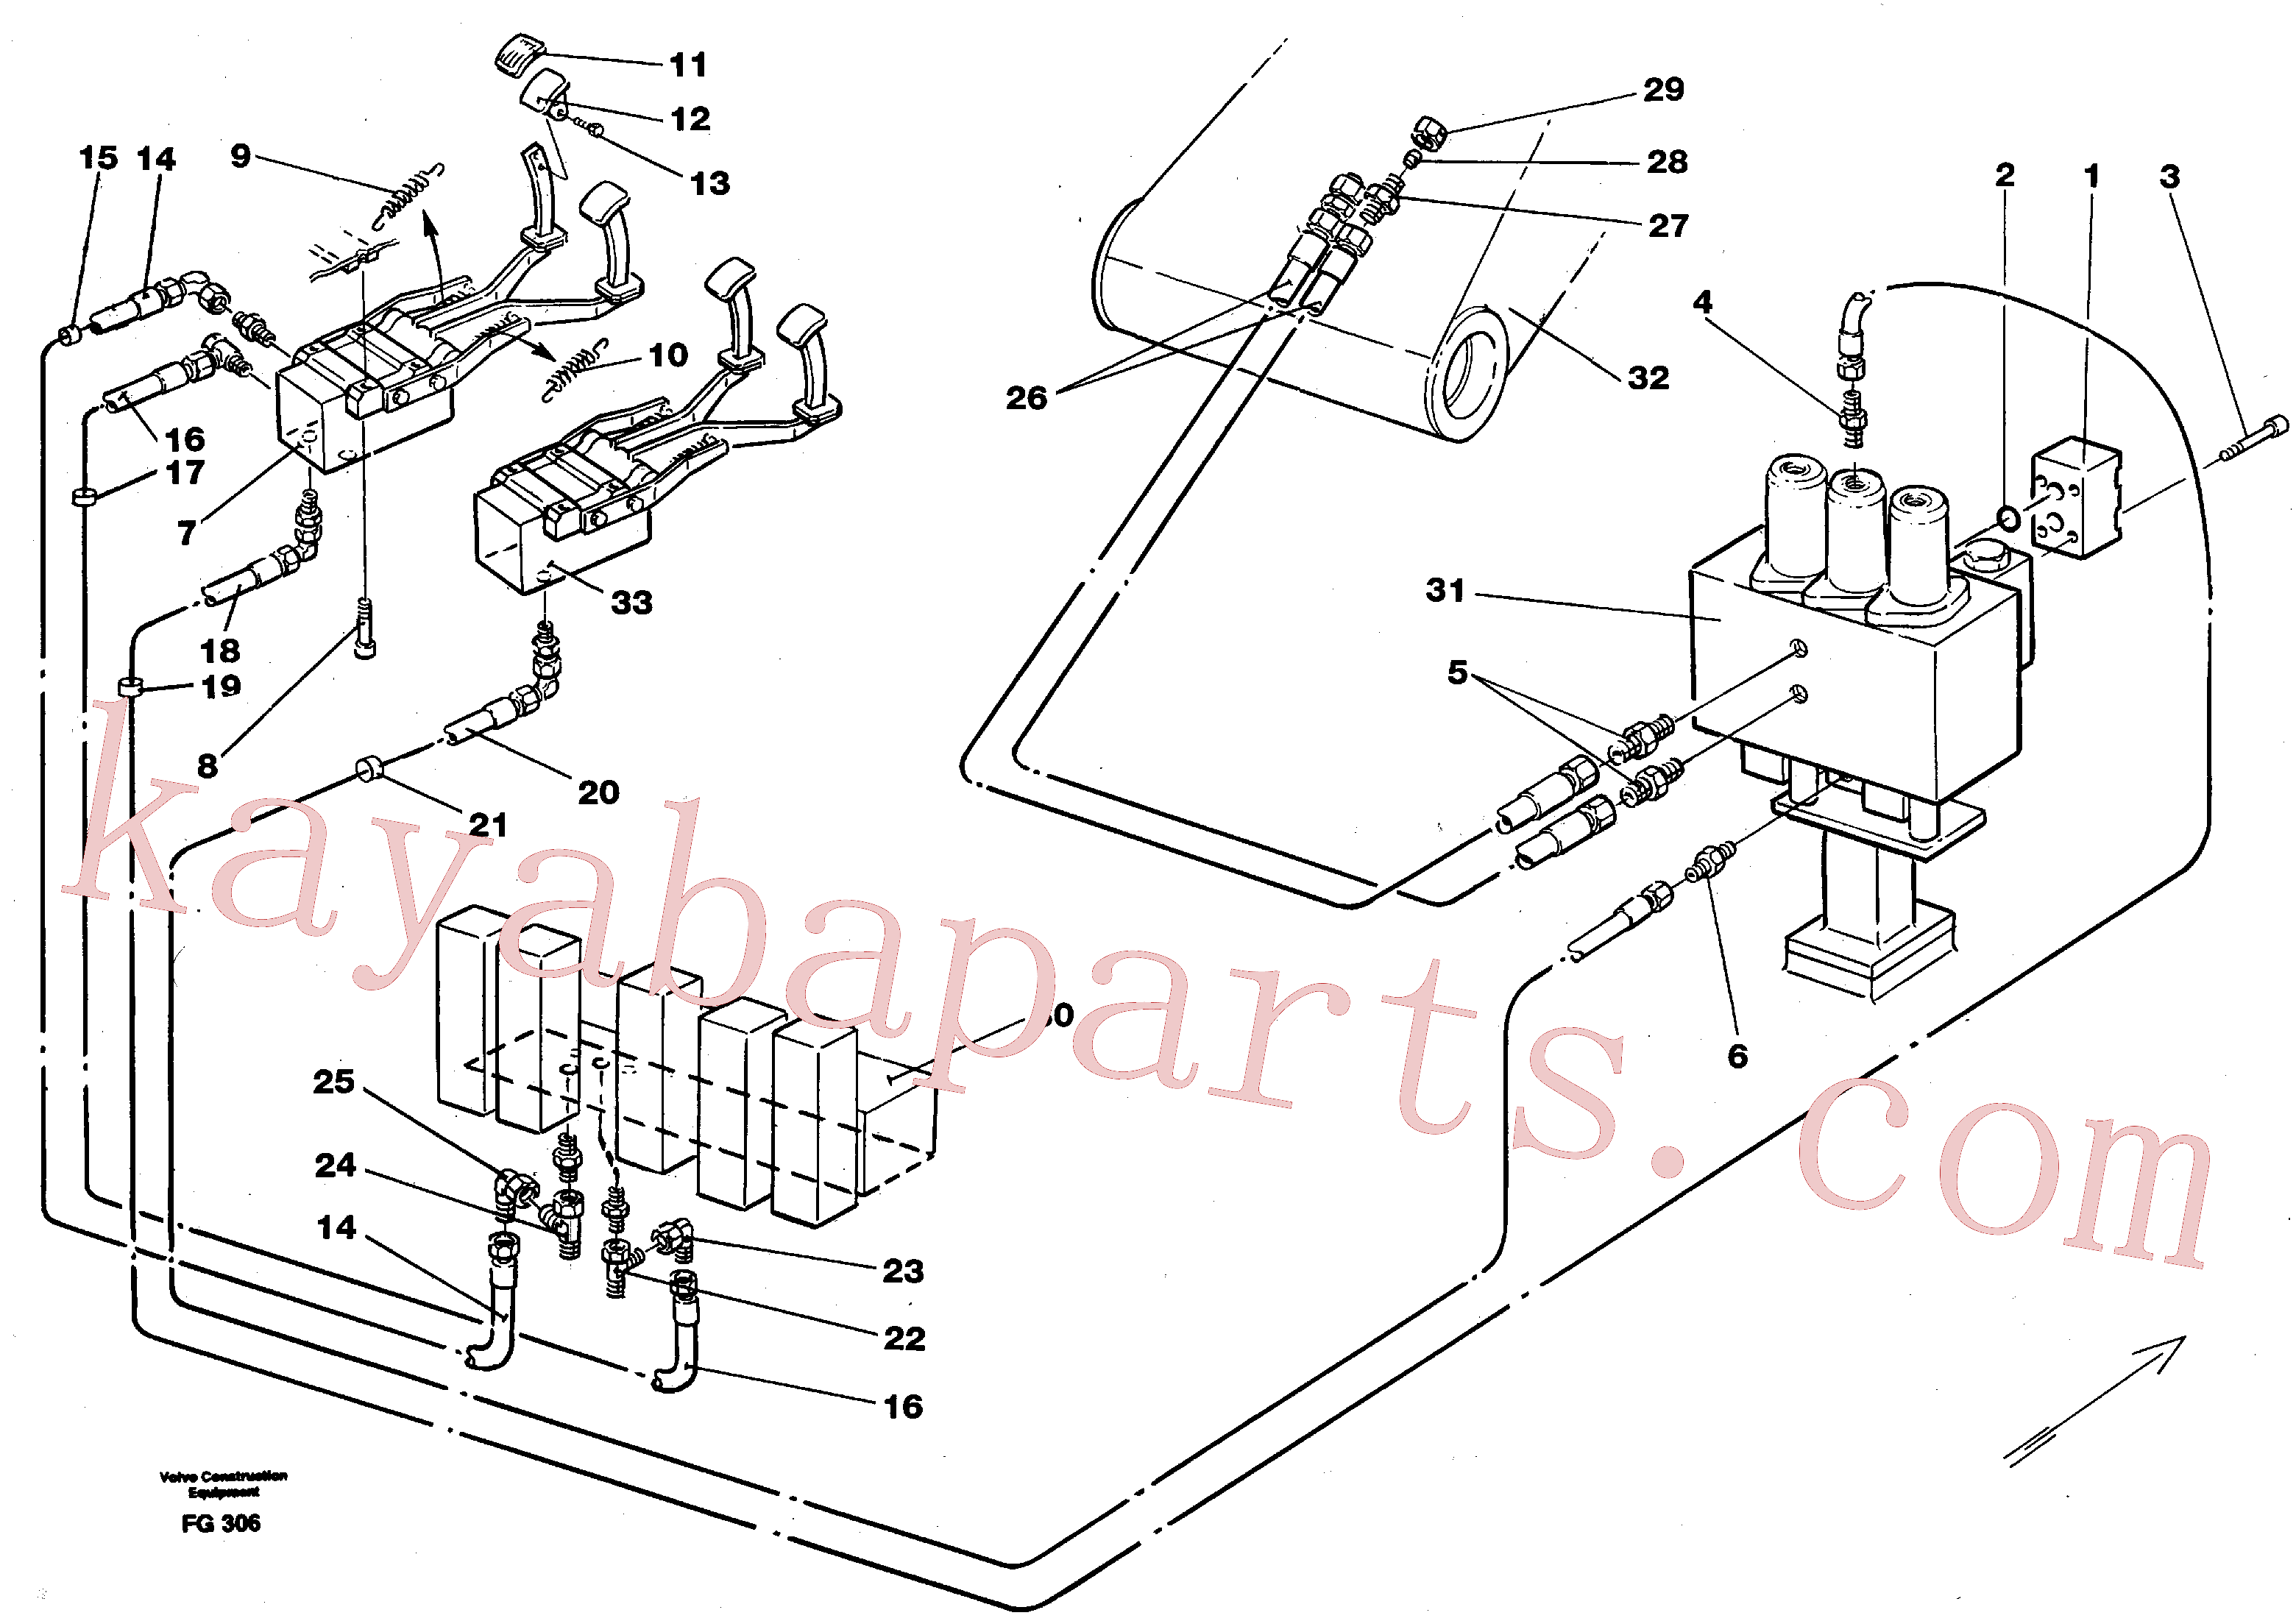 VOE14213151 for Volvo Slope bucket/rotating grab hydraulics in base machine(FG306 assembly)